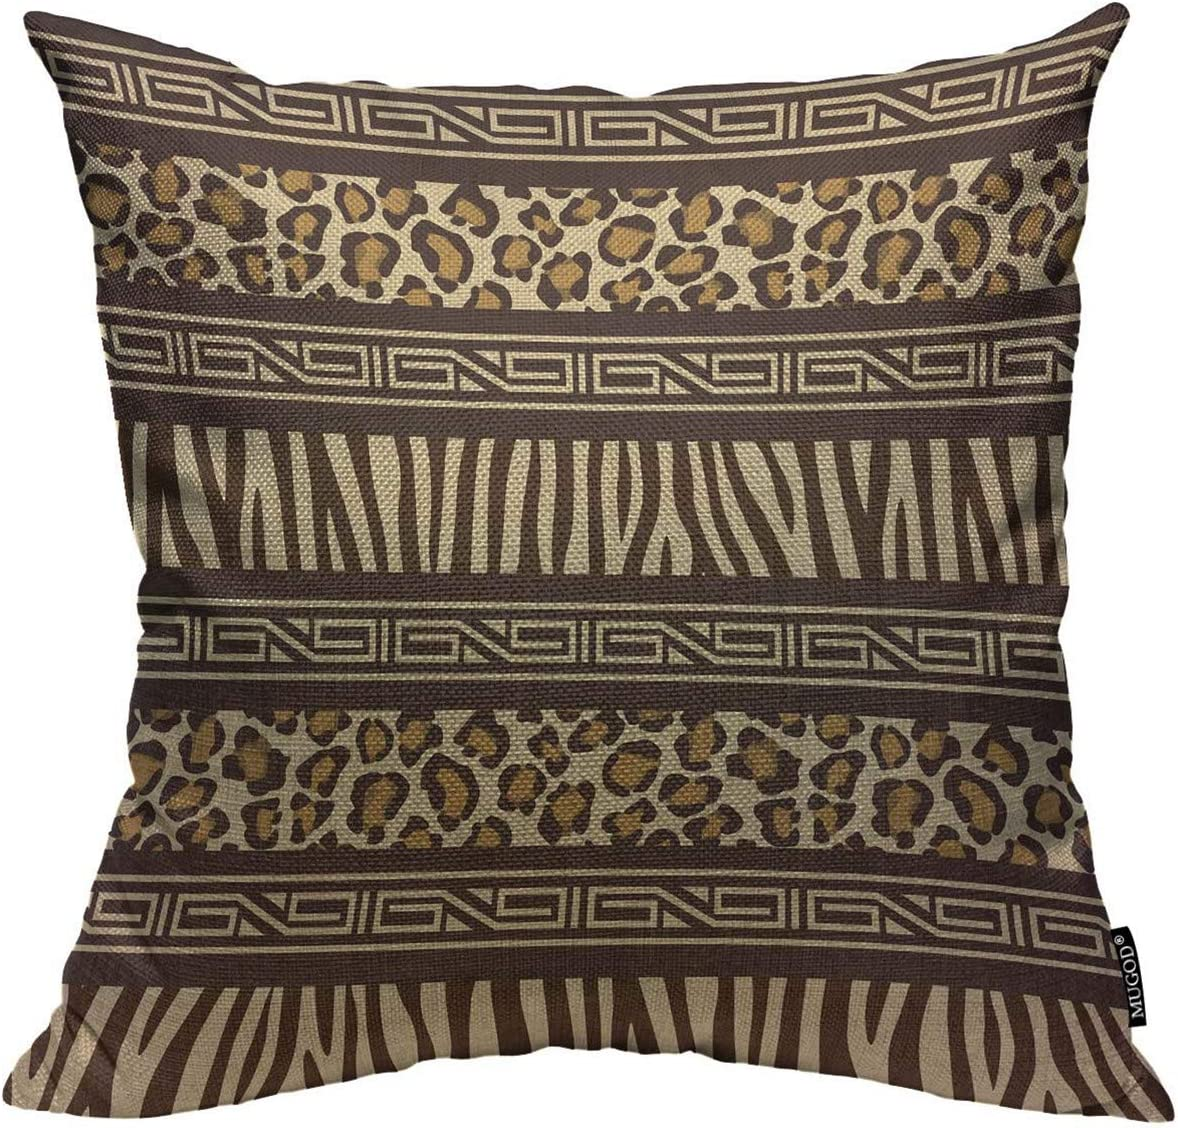 Mugod Throw Pillow Cover Beige Safari African Style with Wild Animals Skins  Red Tribal Leopard Home Decor Square Pillow Case for Men Women Boy Gilrs ...